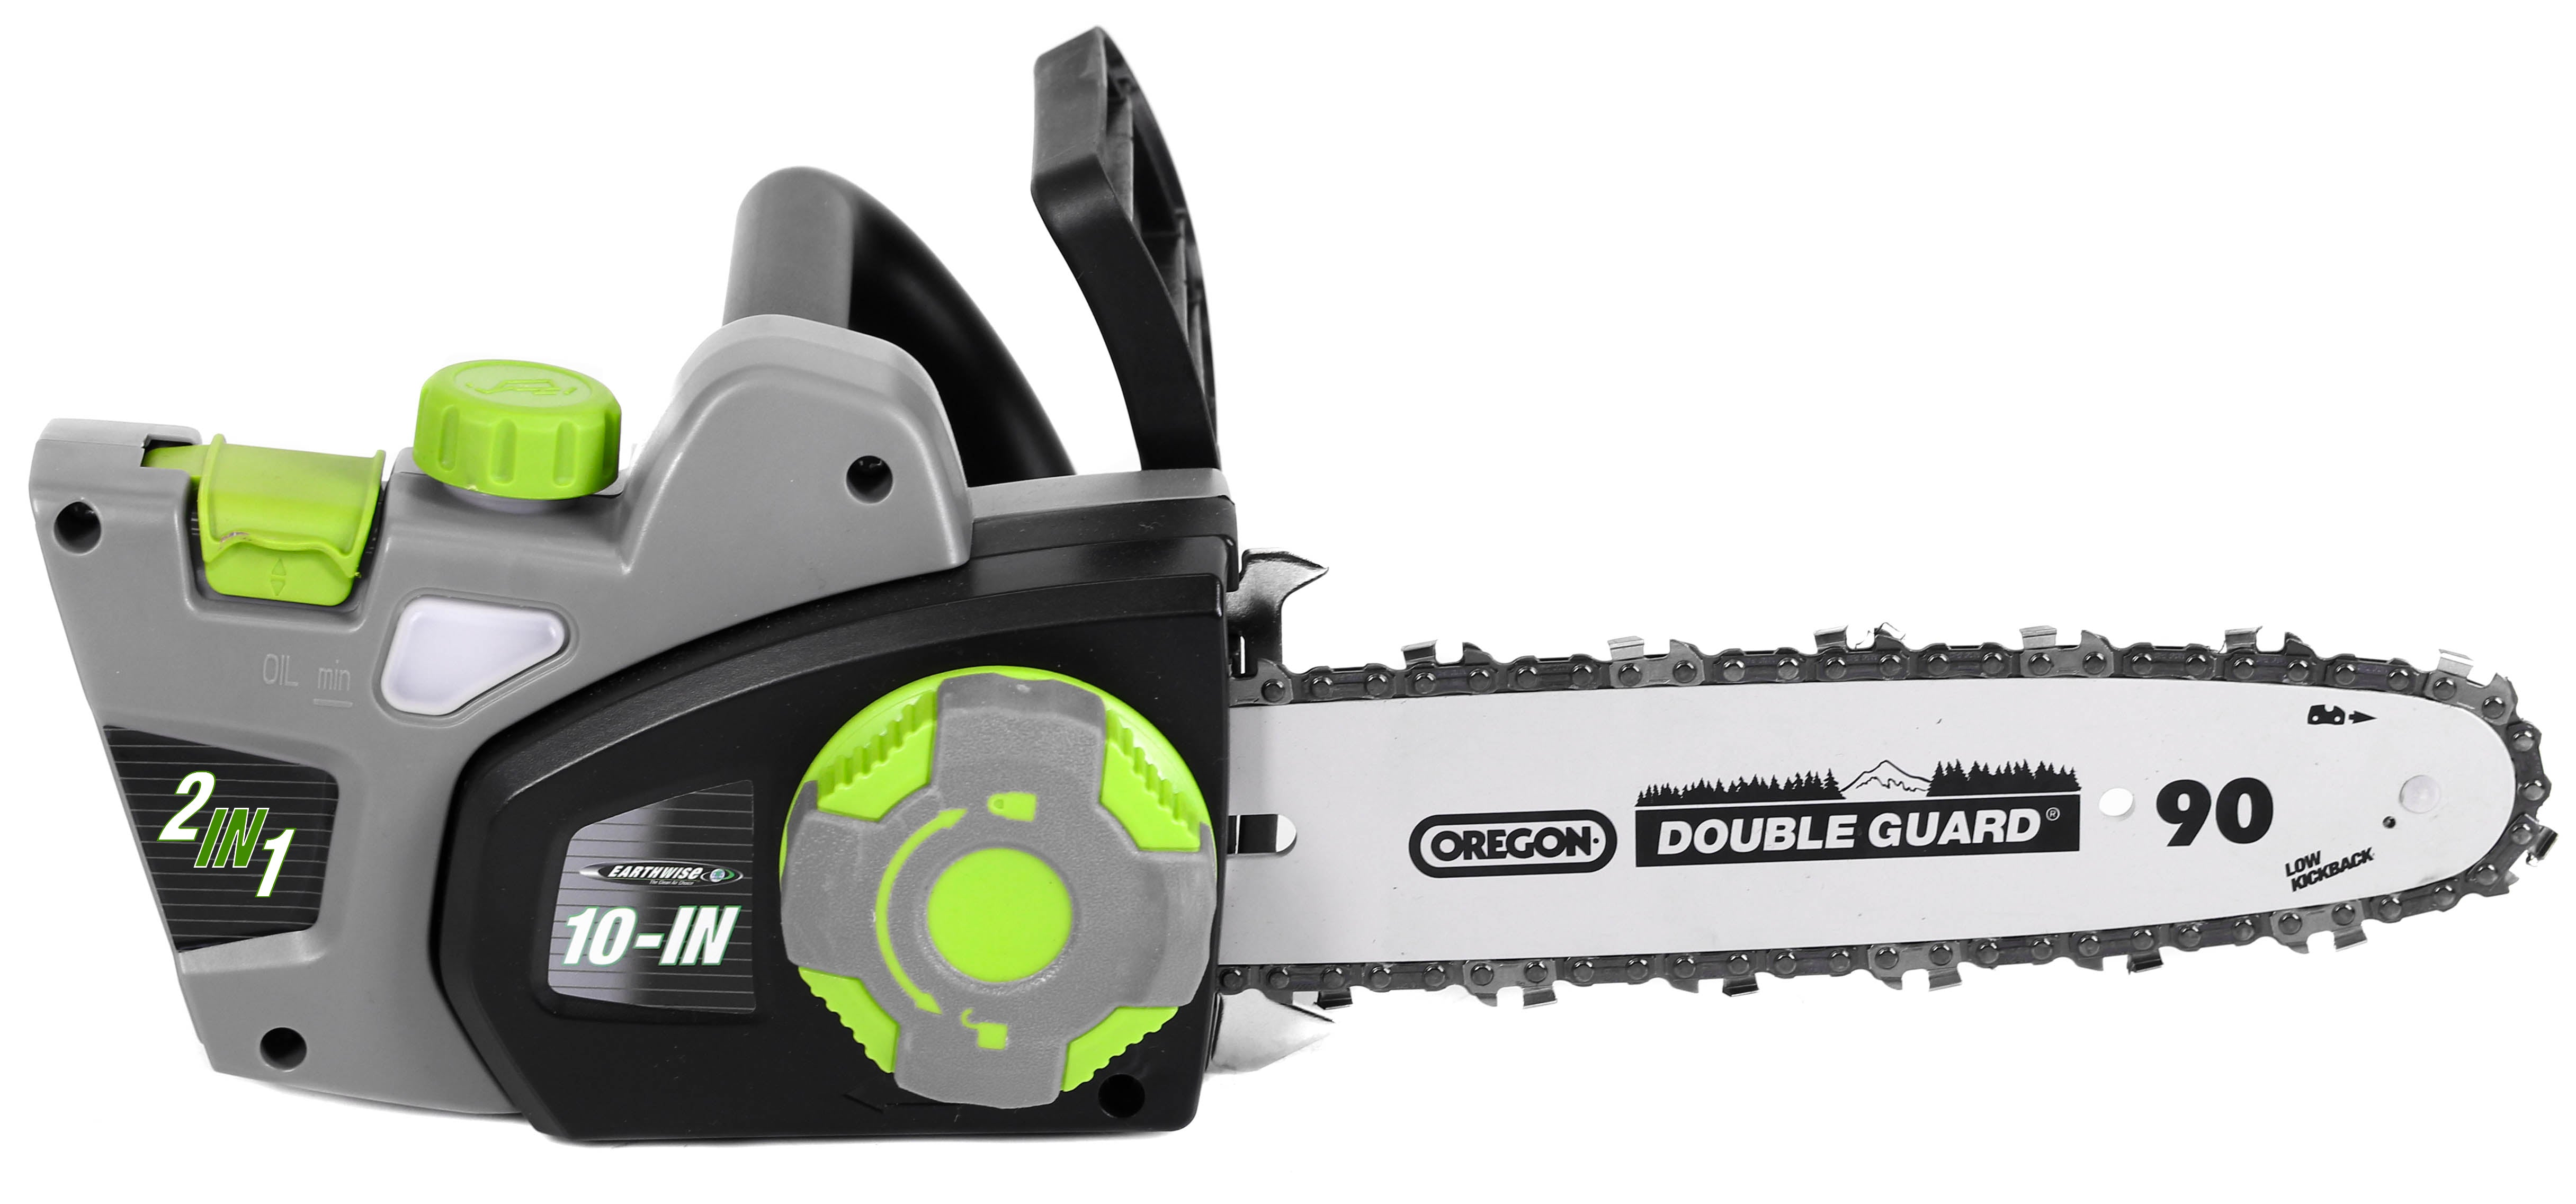 "Earthwise Power Tools by ALM 10"" 7-Amp 120V Corded 2 in 1 Pole Saw"